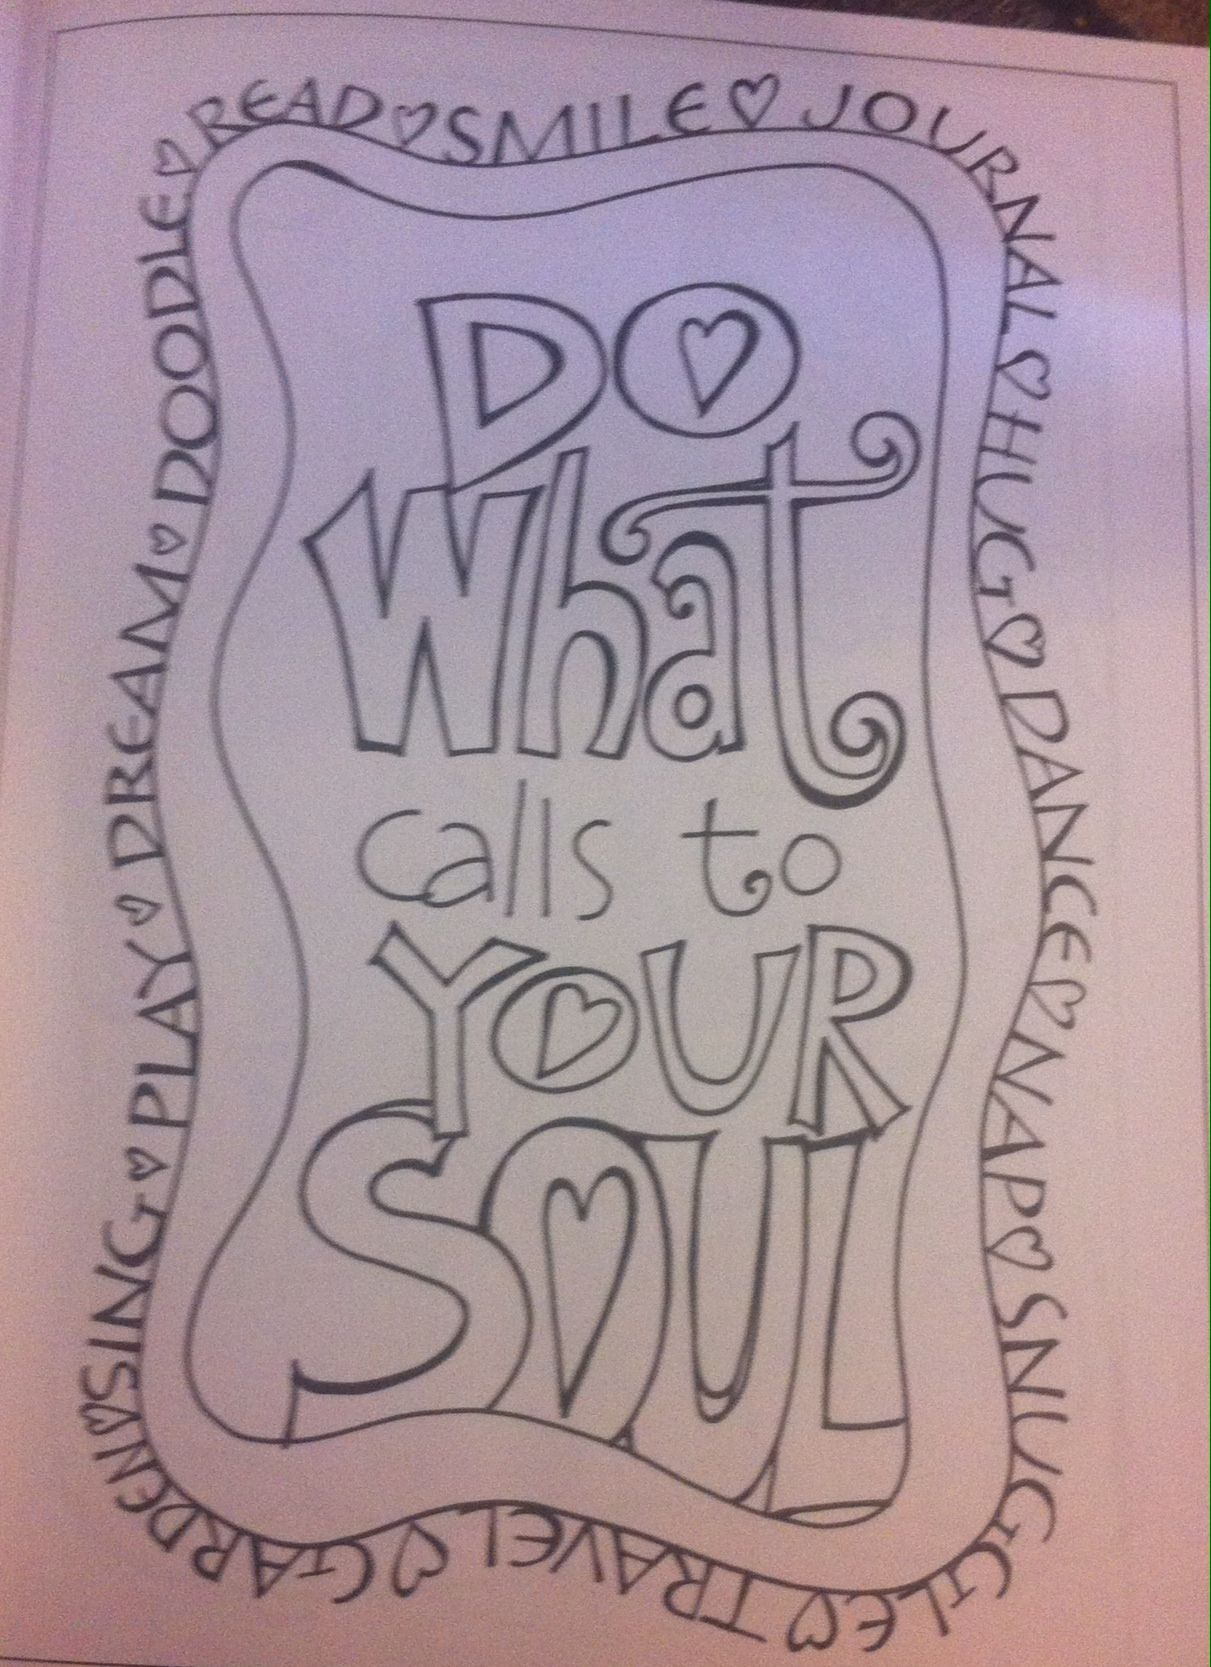 Do what calls your soul